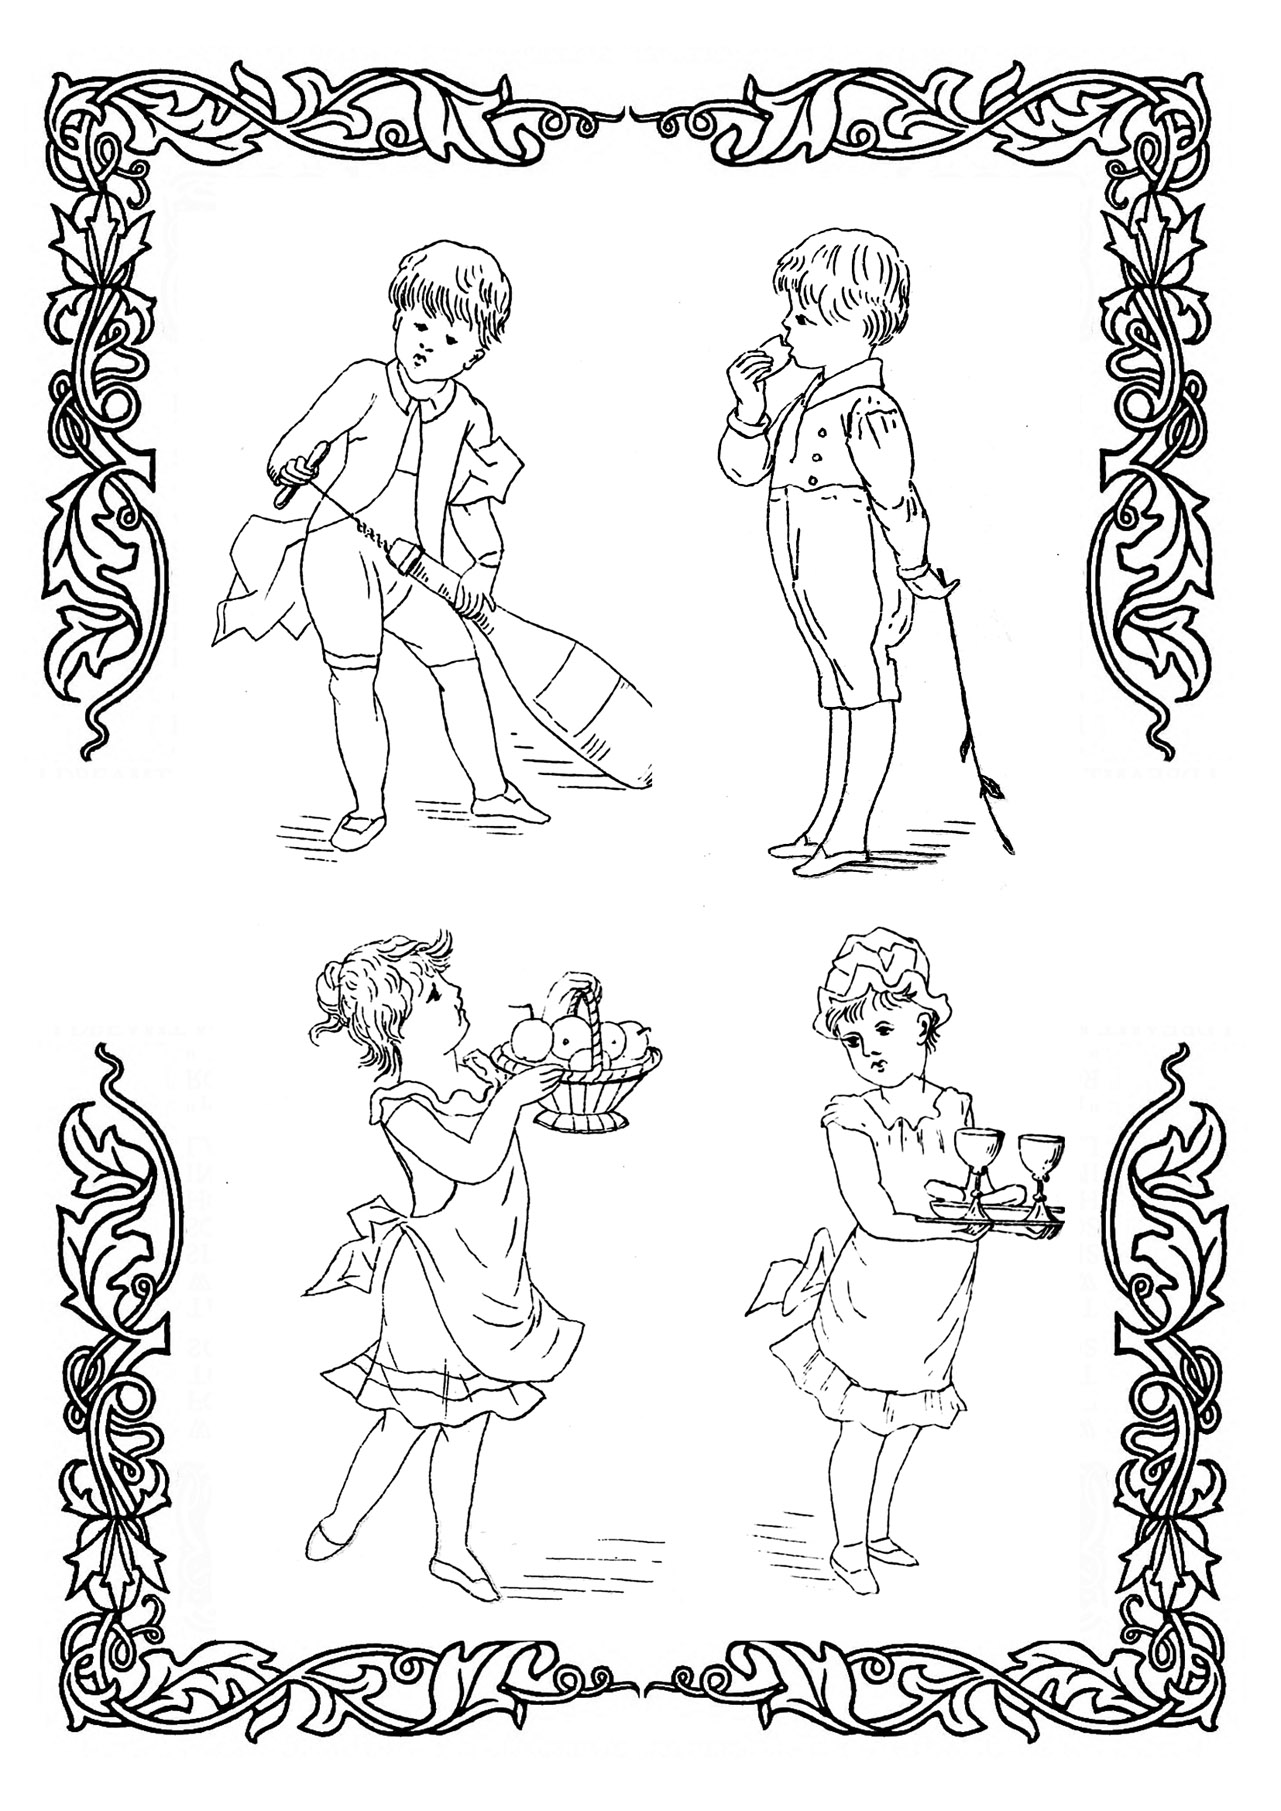 victorian colouring sheets victorian era coloring pages victorian by renonevada on victorian sheets colouring